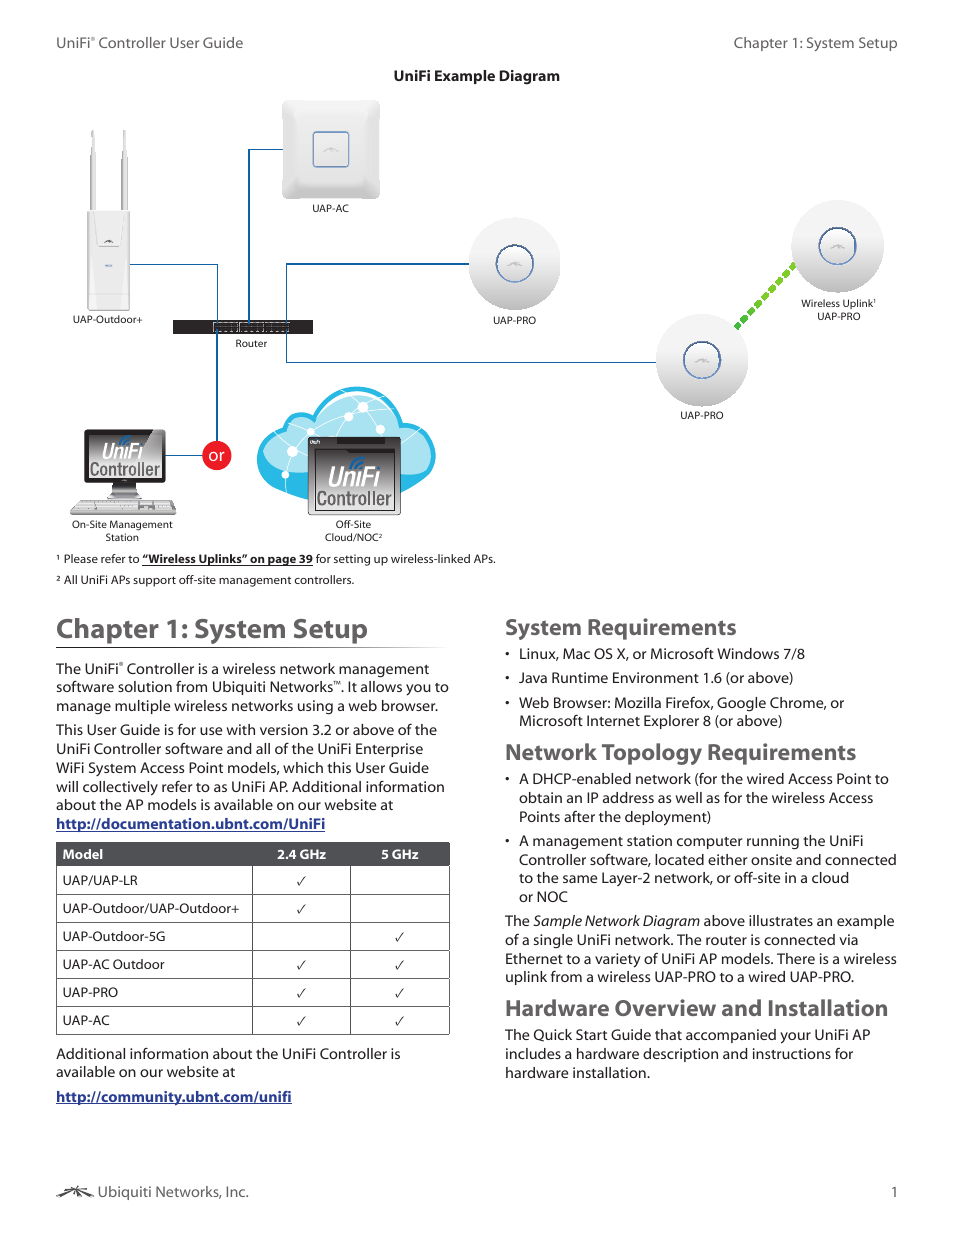 Chapter 1 System Setup Requirements Network Topology Ubiquiti Wiring Diagram Networks Unif Ap Ac Outdoor User Manual Page 4 57